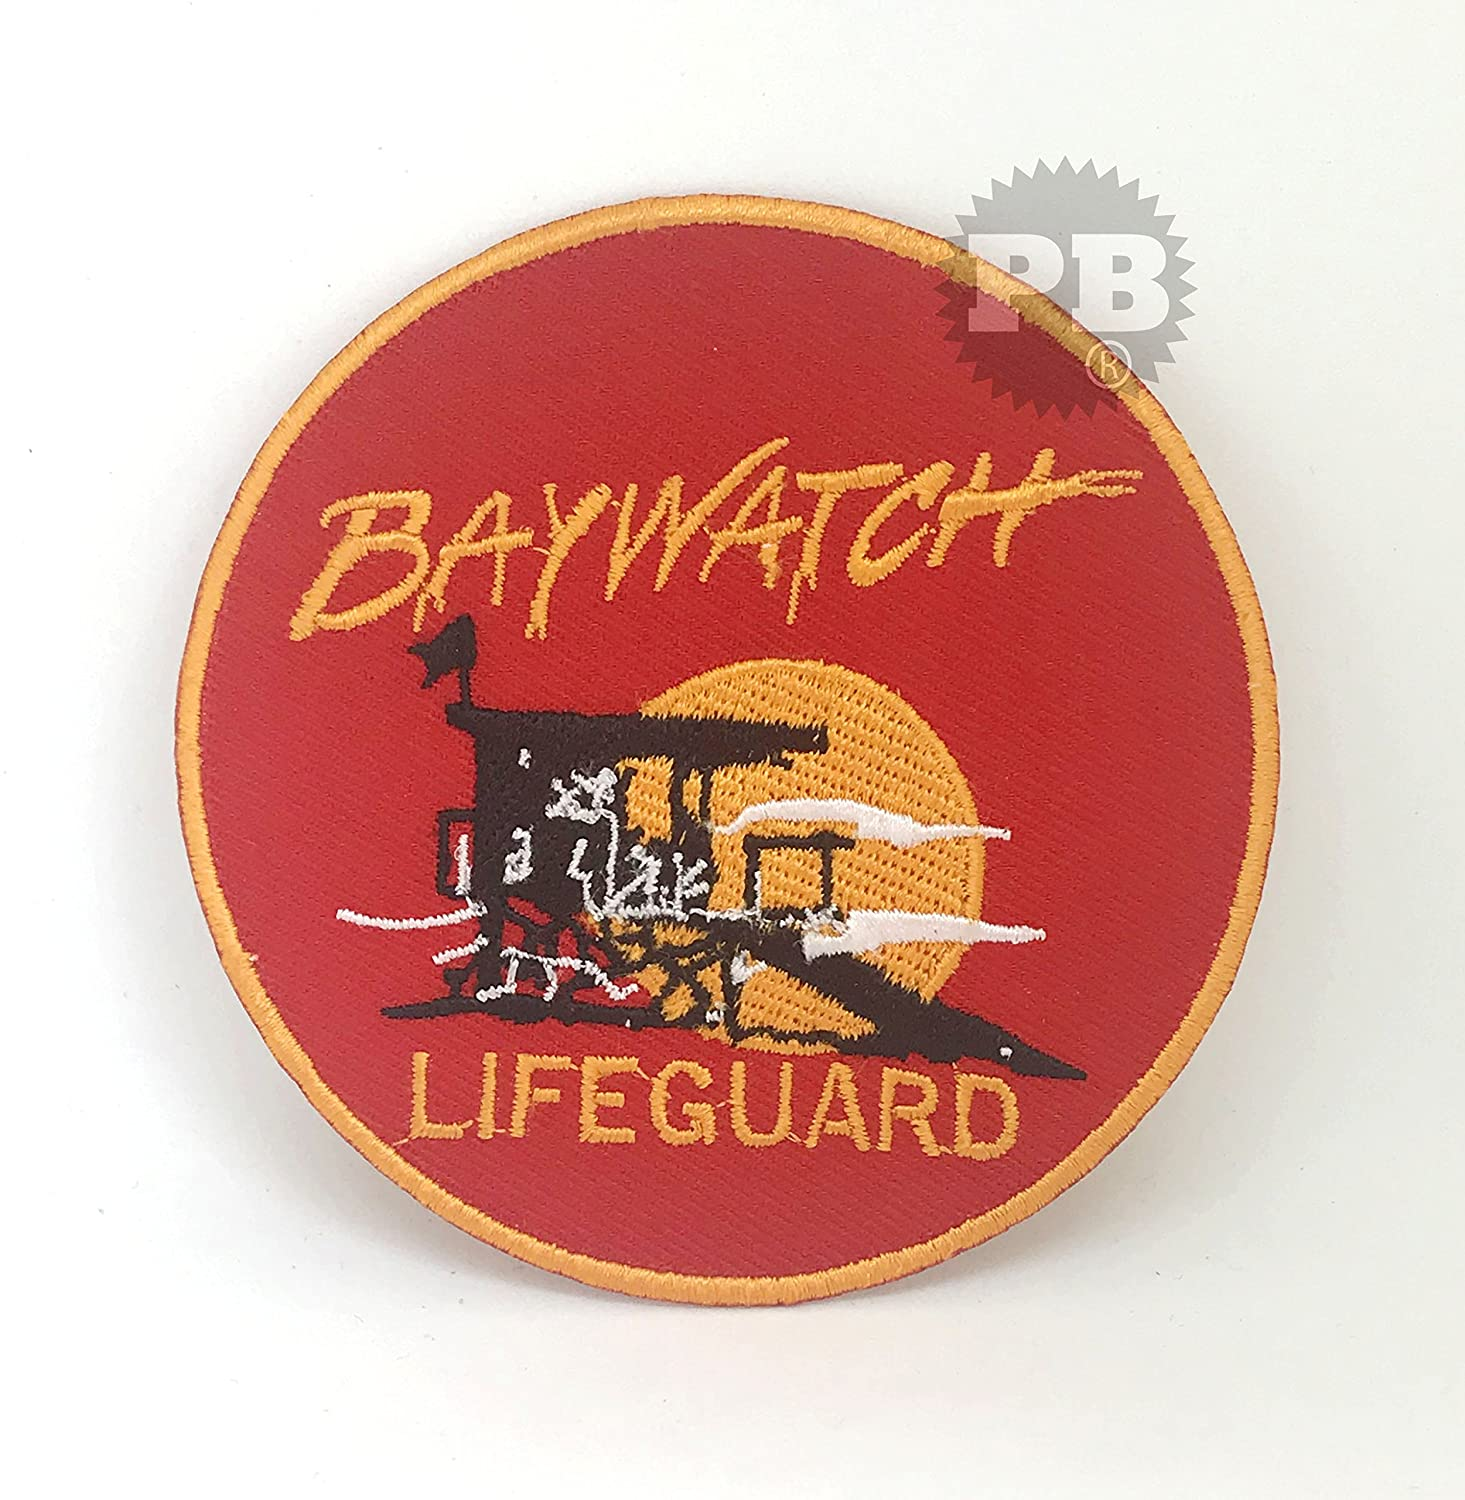 BAYWATCH Swimsuit Lifeguard Logo Iron-On Embroidered Patch Embrologos